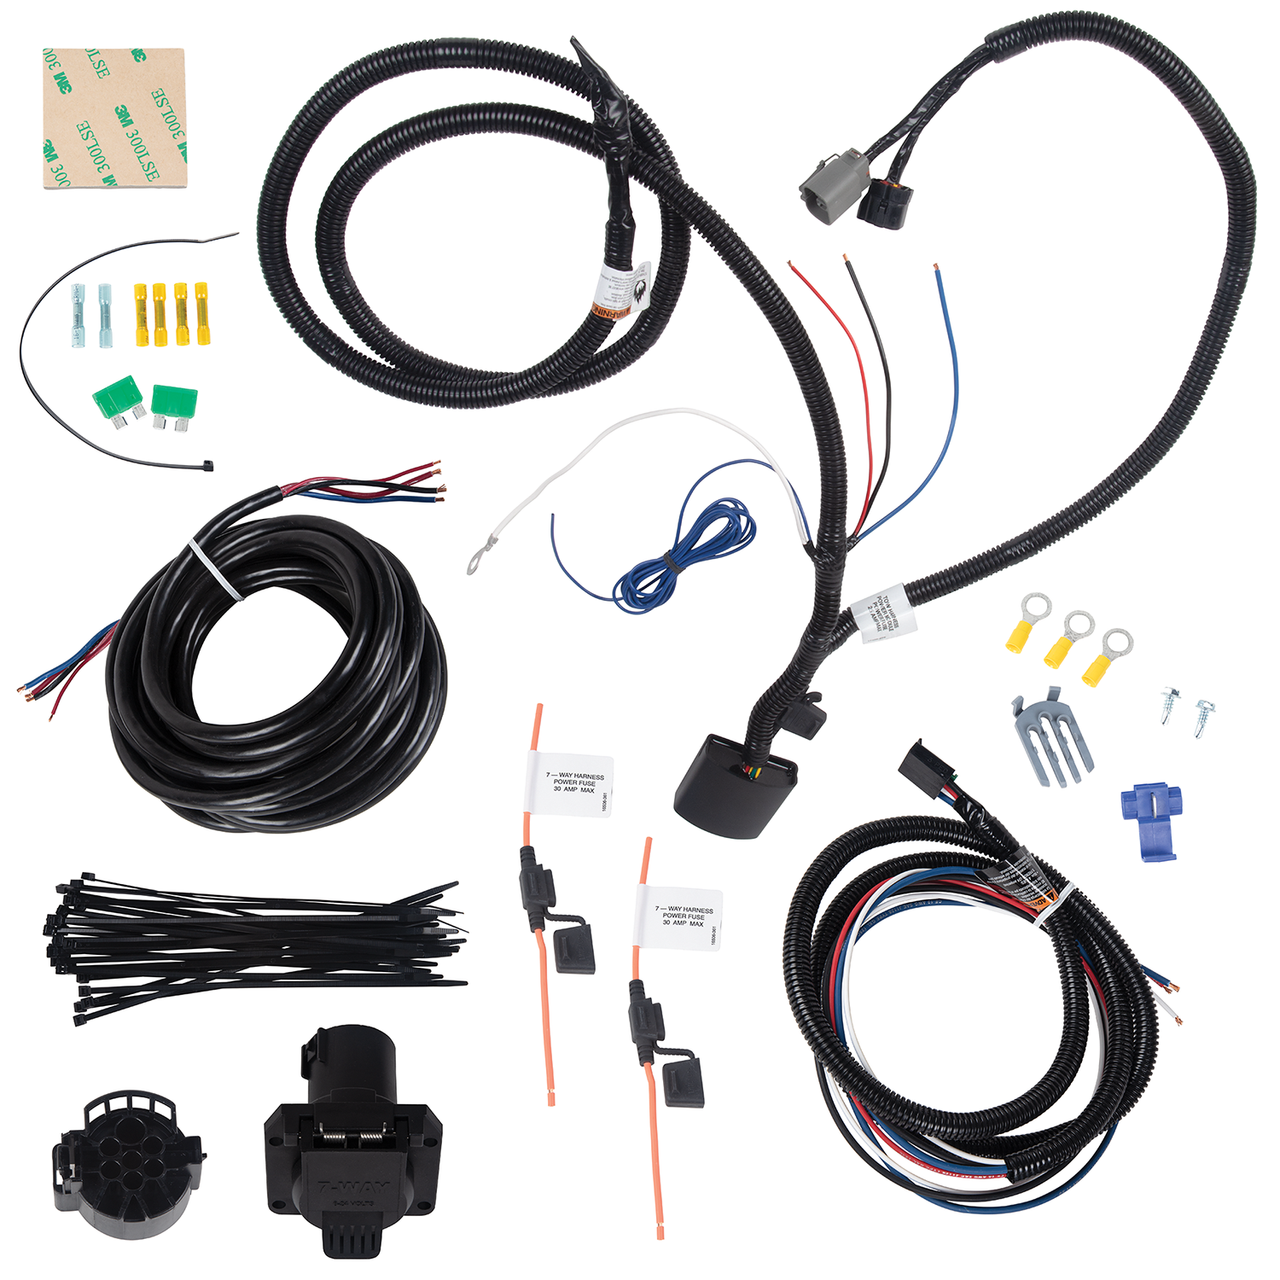 22122 --- Tow Harness, 7 Way Complete Kit